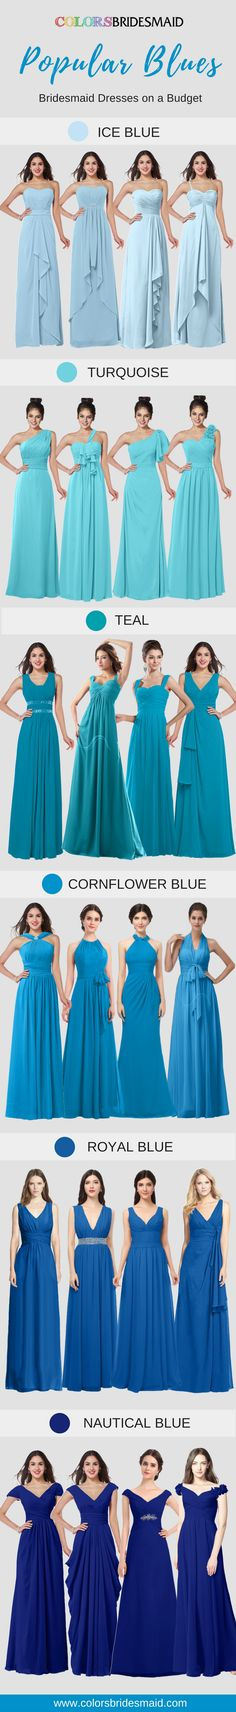 Long bridesmaid dresses in pupular blues(ice blue, truquoise, teal, cornflower blue, royal blue, nautical blue) in fashionable styles are ready for you to pick up for a fall or winter wedding. Their prices are beyond your imagination, under $100. Never miss it!